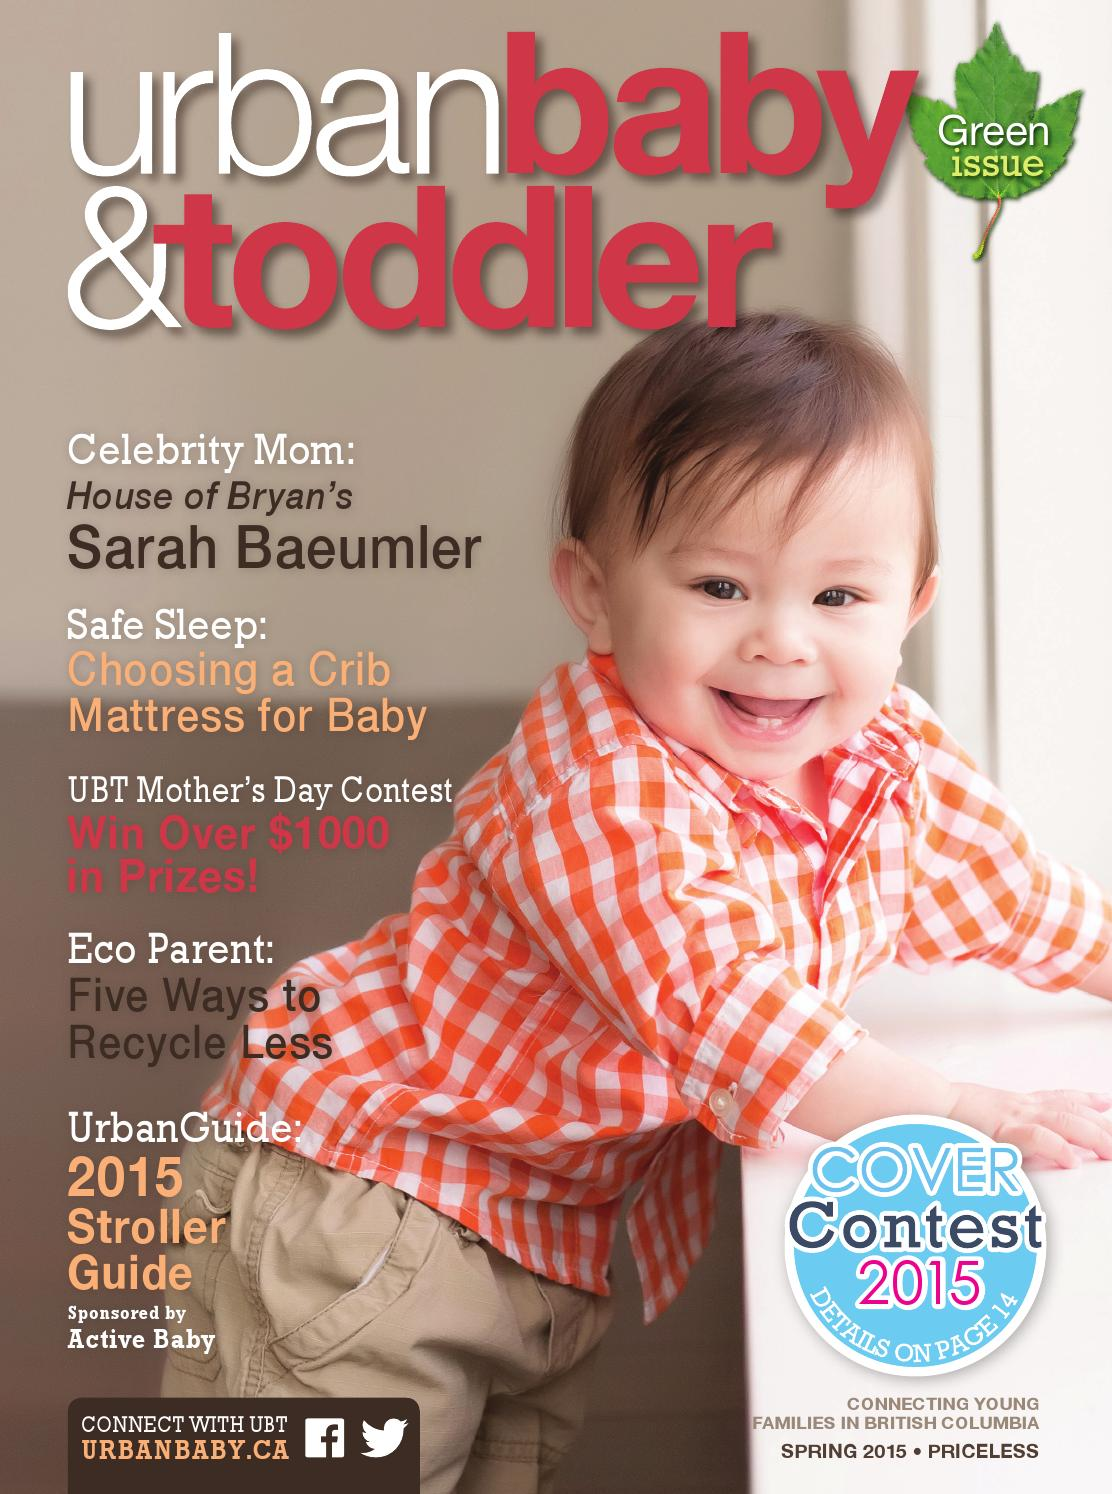 urbanbaby amp toddler magazine spring 2015 by urbanbaby